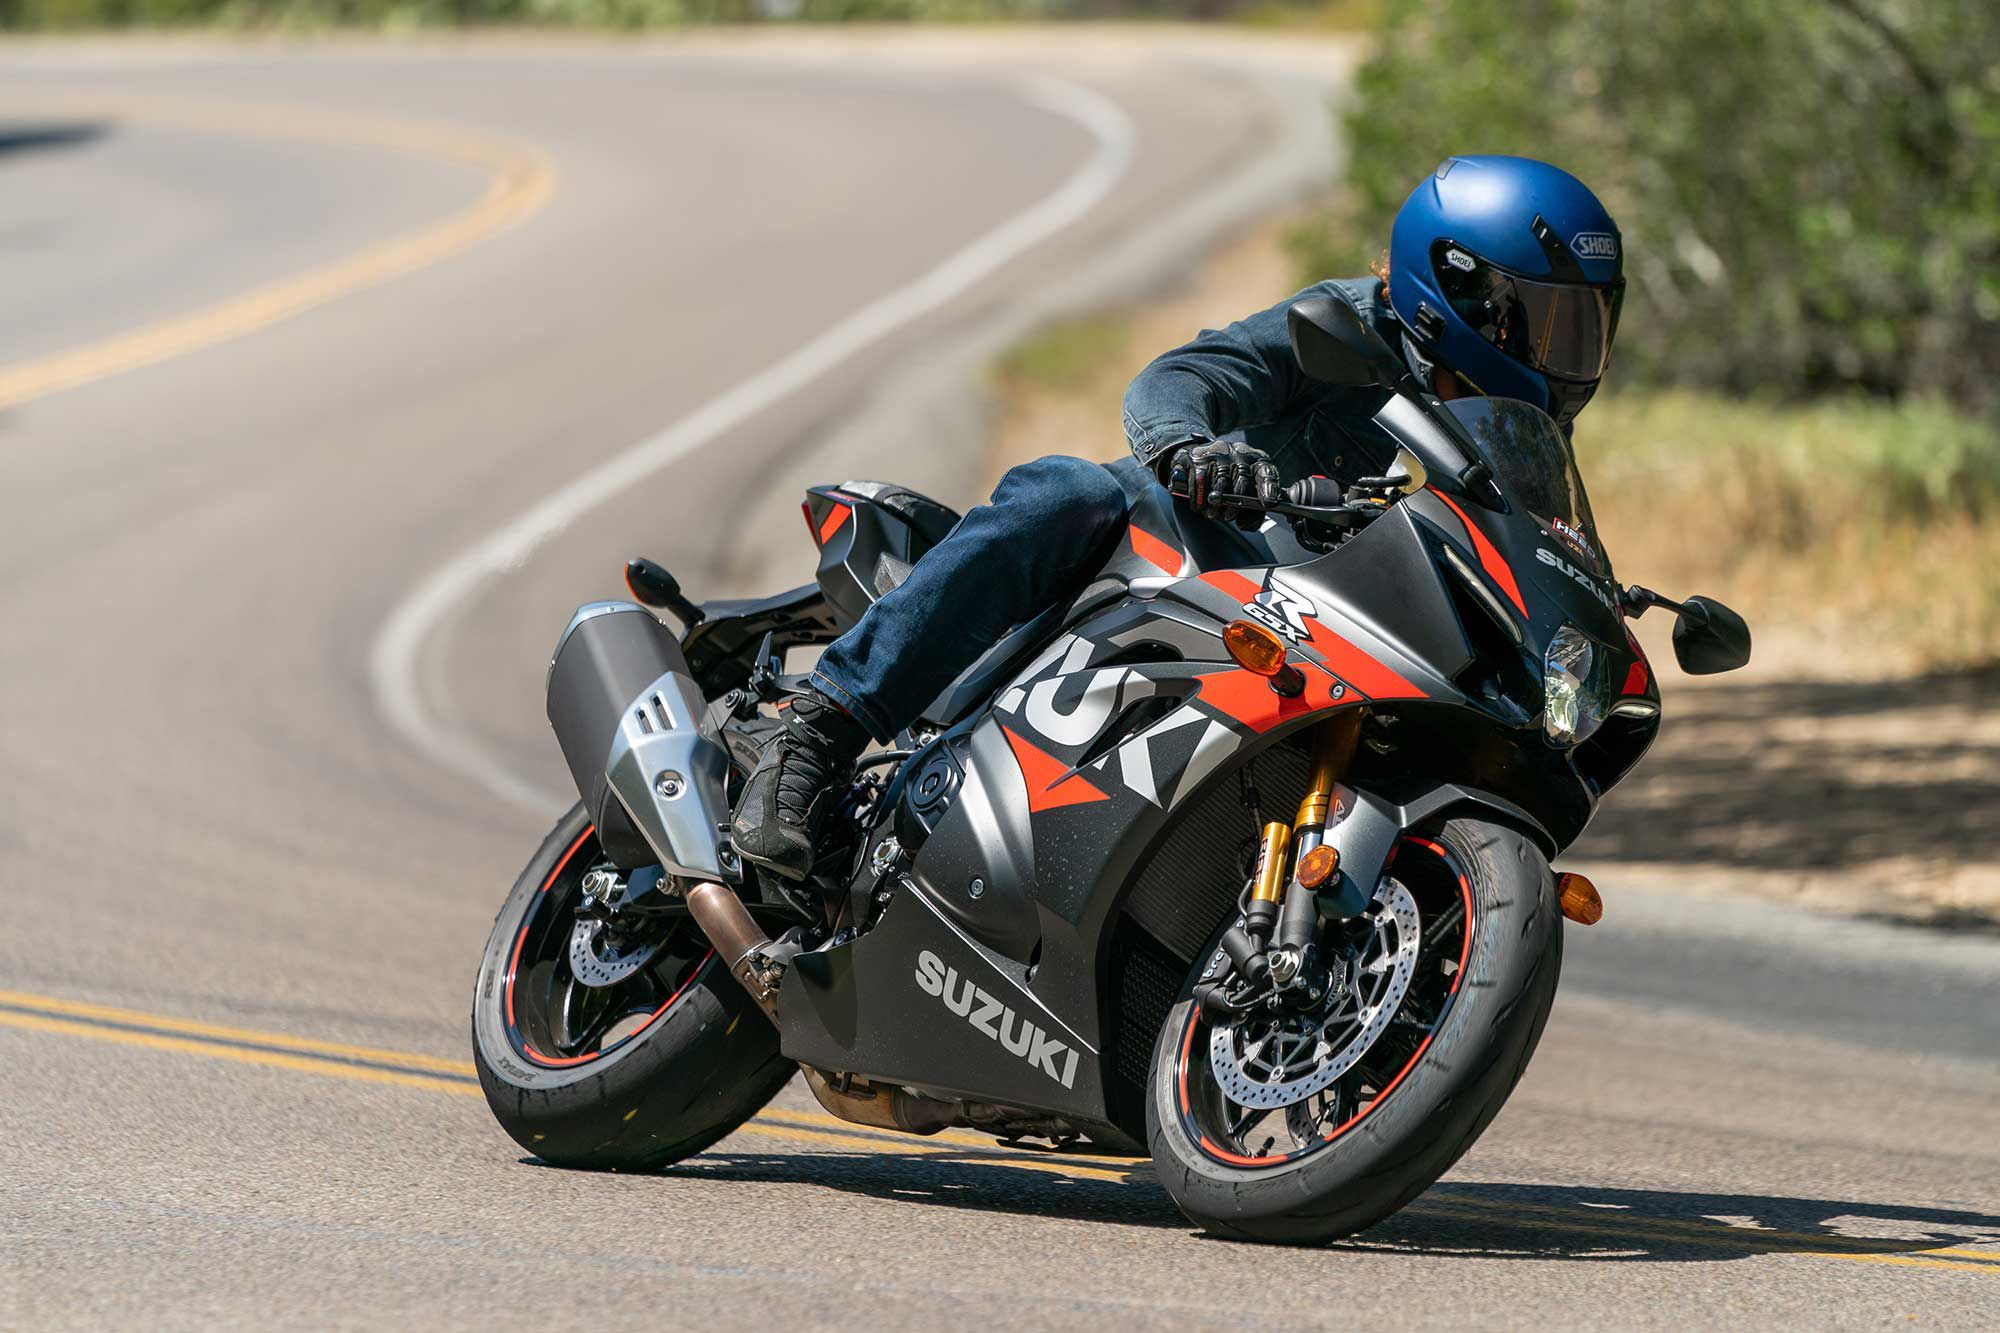 Suzuki's GSX-R1000R impresses with its high-level of agility. It dances well for a 445-pound motorcycle.